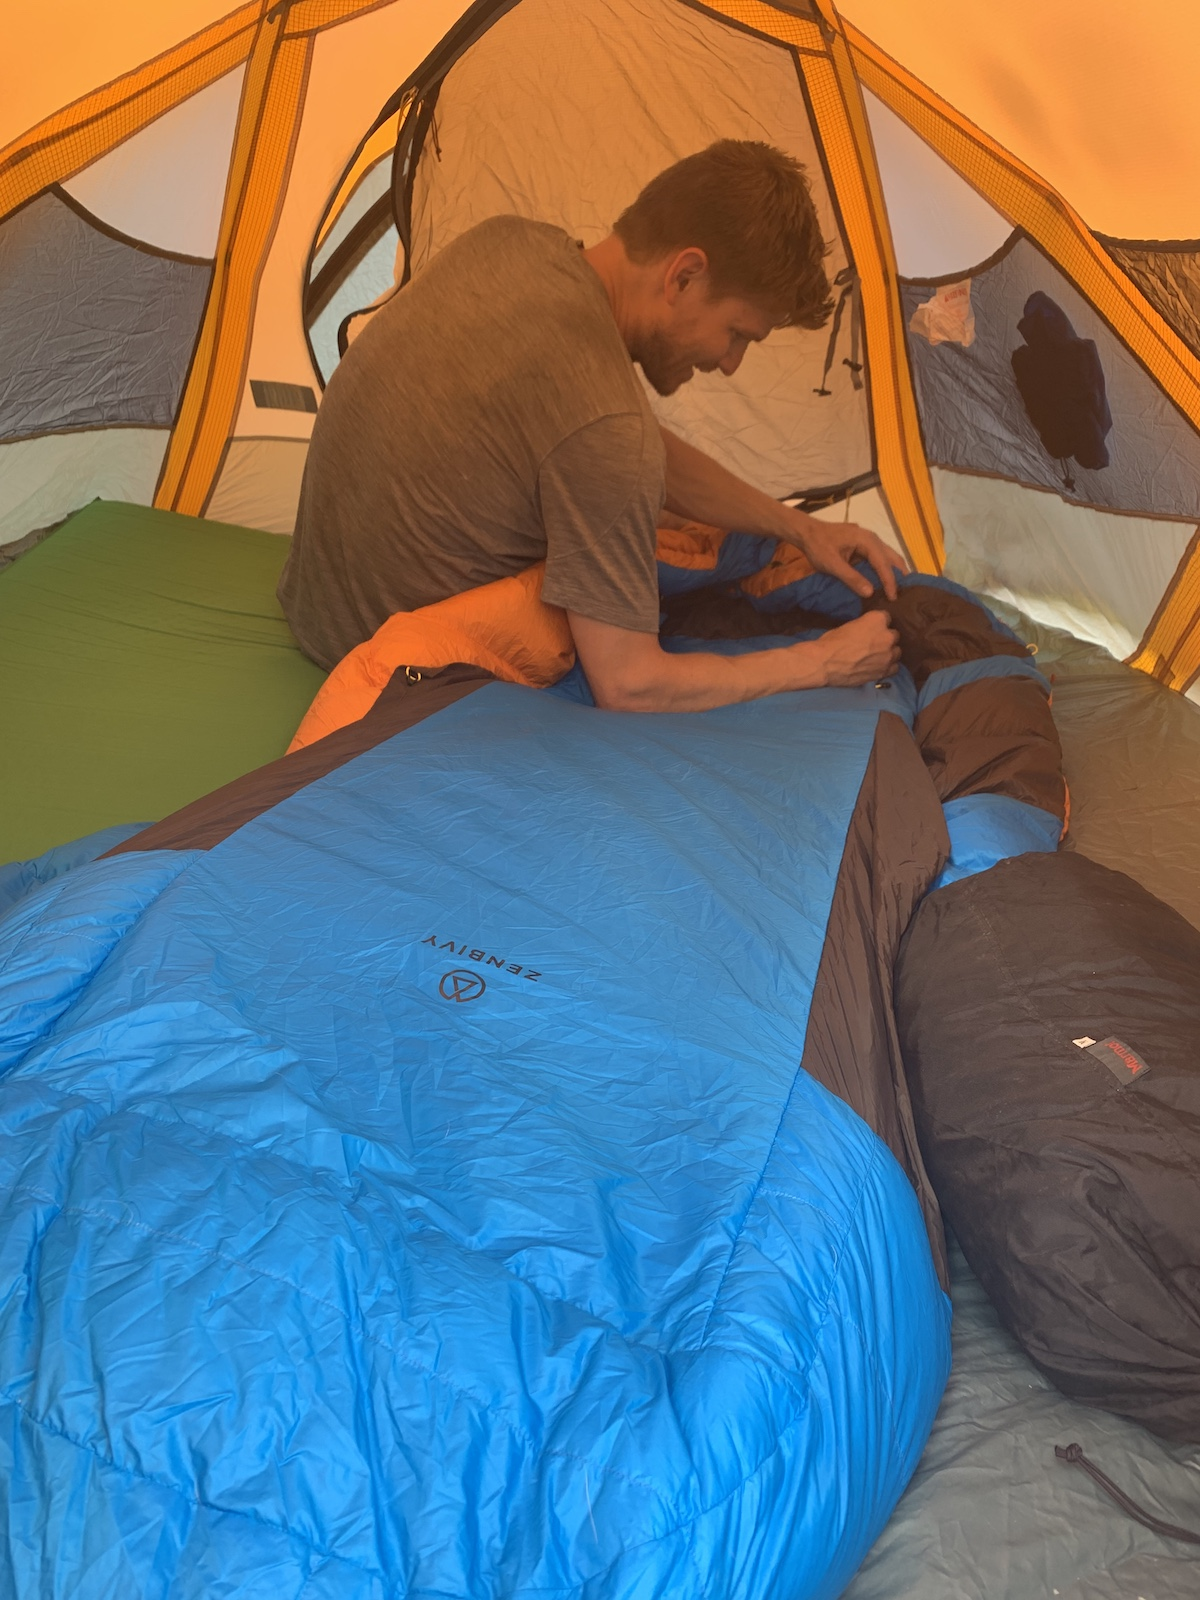 Derek Franz sets up his Zenbivy bed during a backpack trip in Colorado's Elk Range. [Photo] Mandi Franz